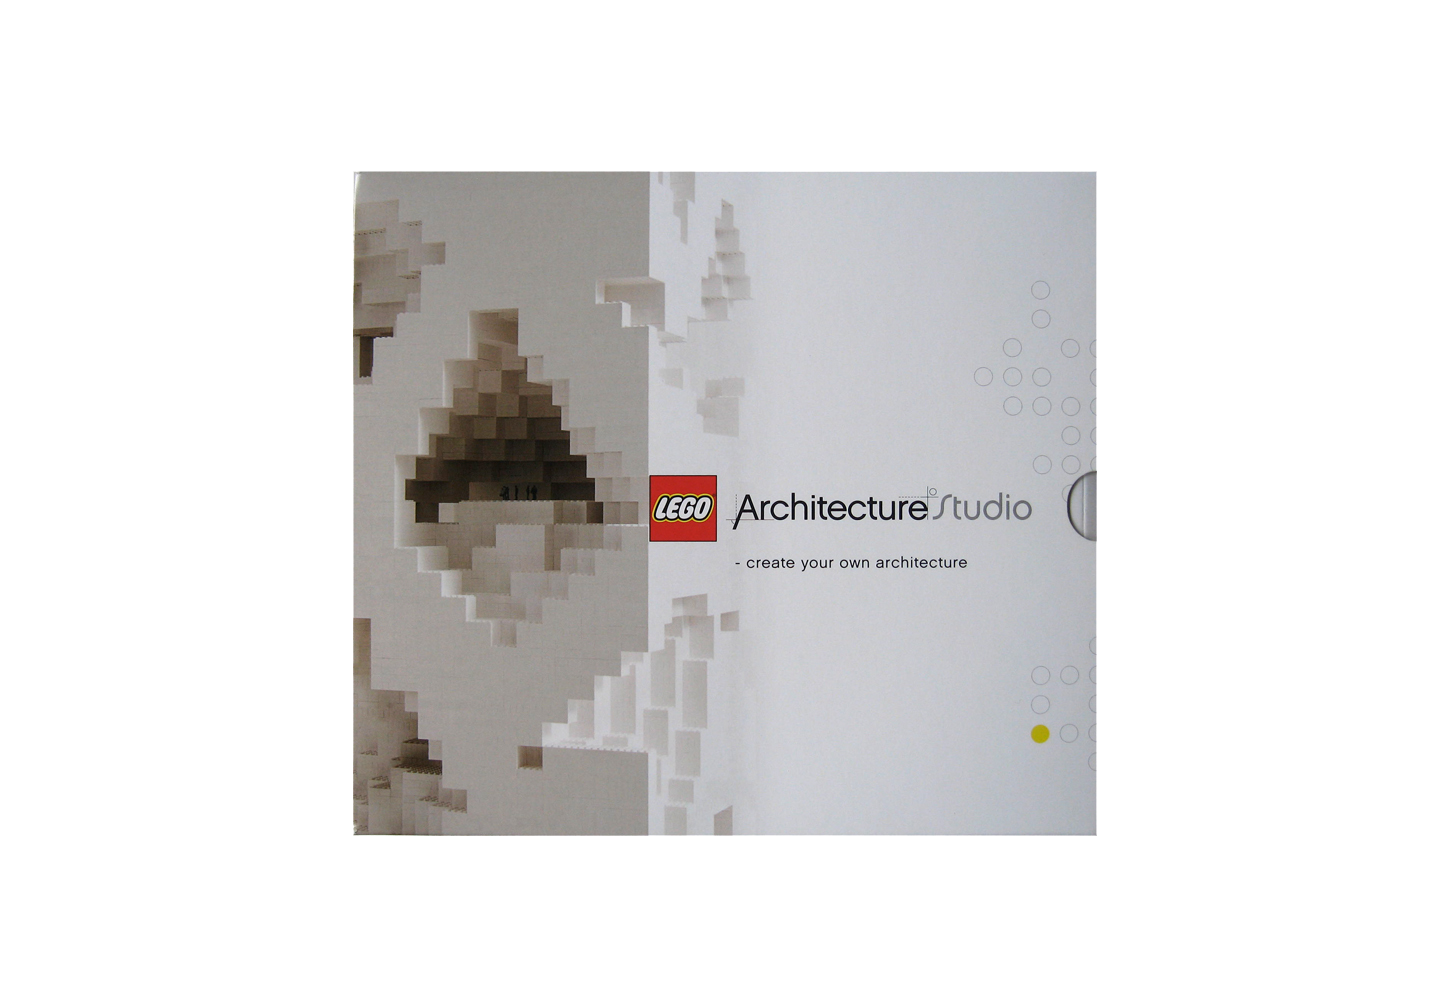 LEGO_00.png